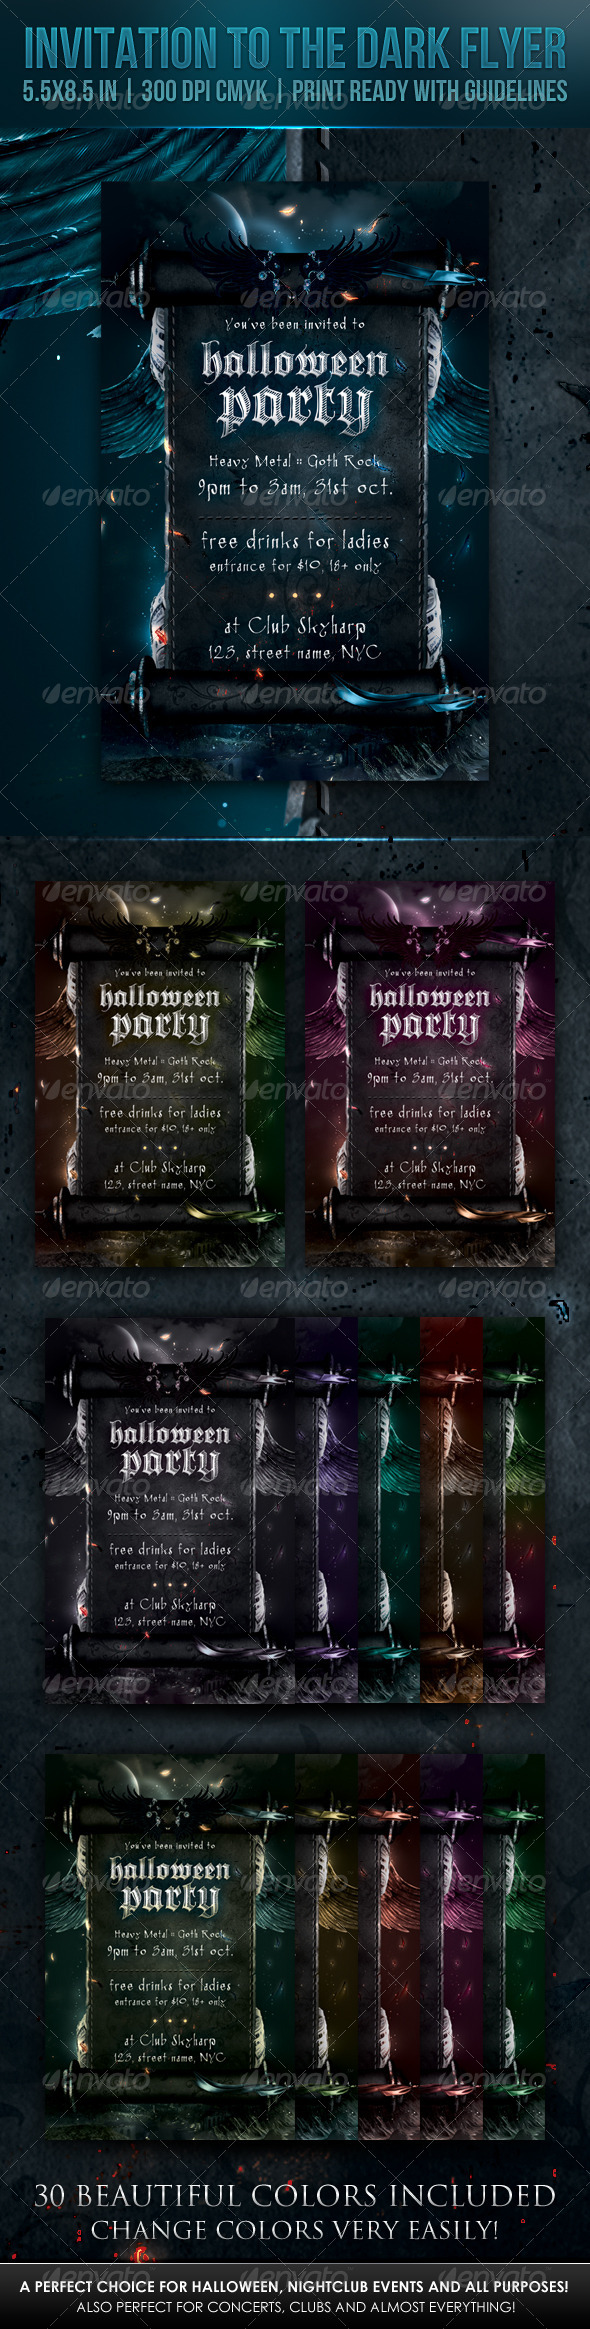 Invitation to the Dark Flyer - Print Templates